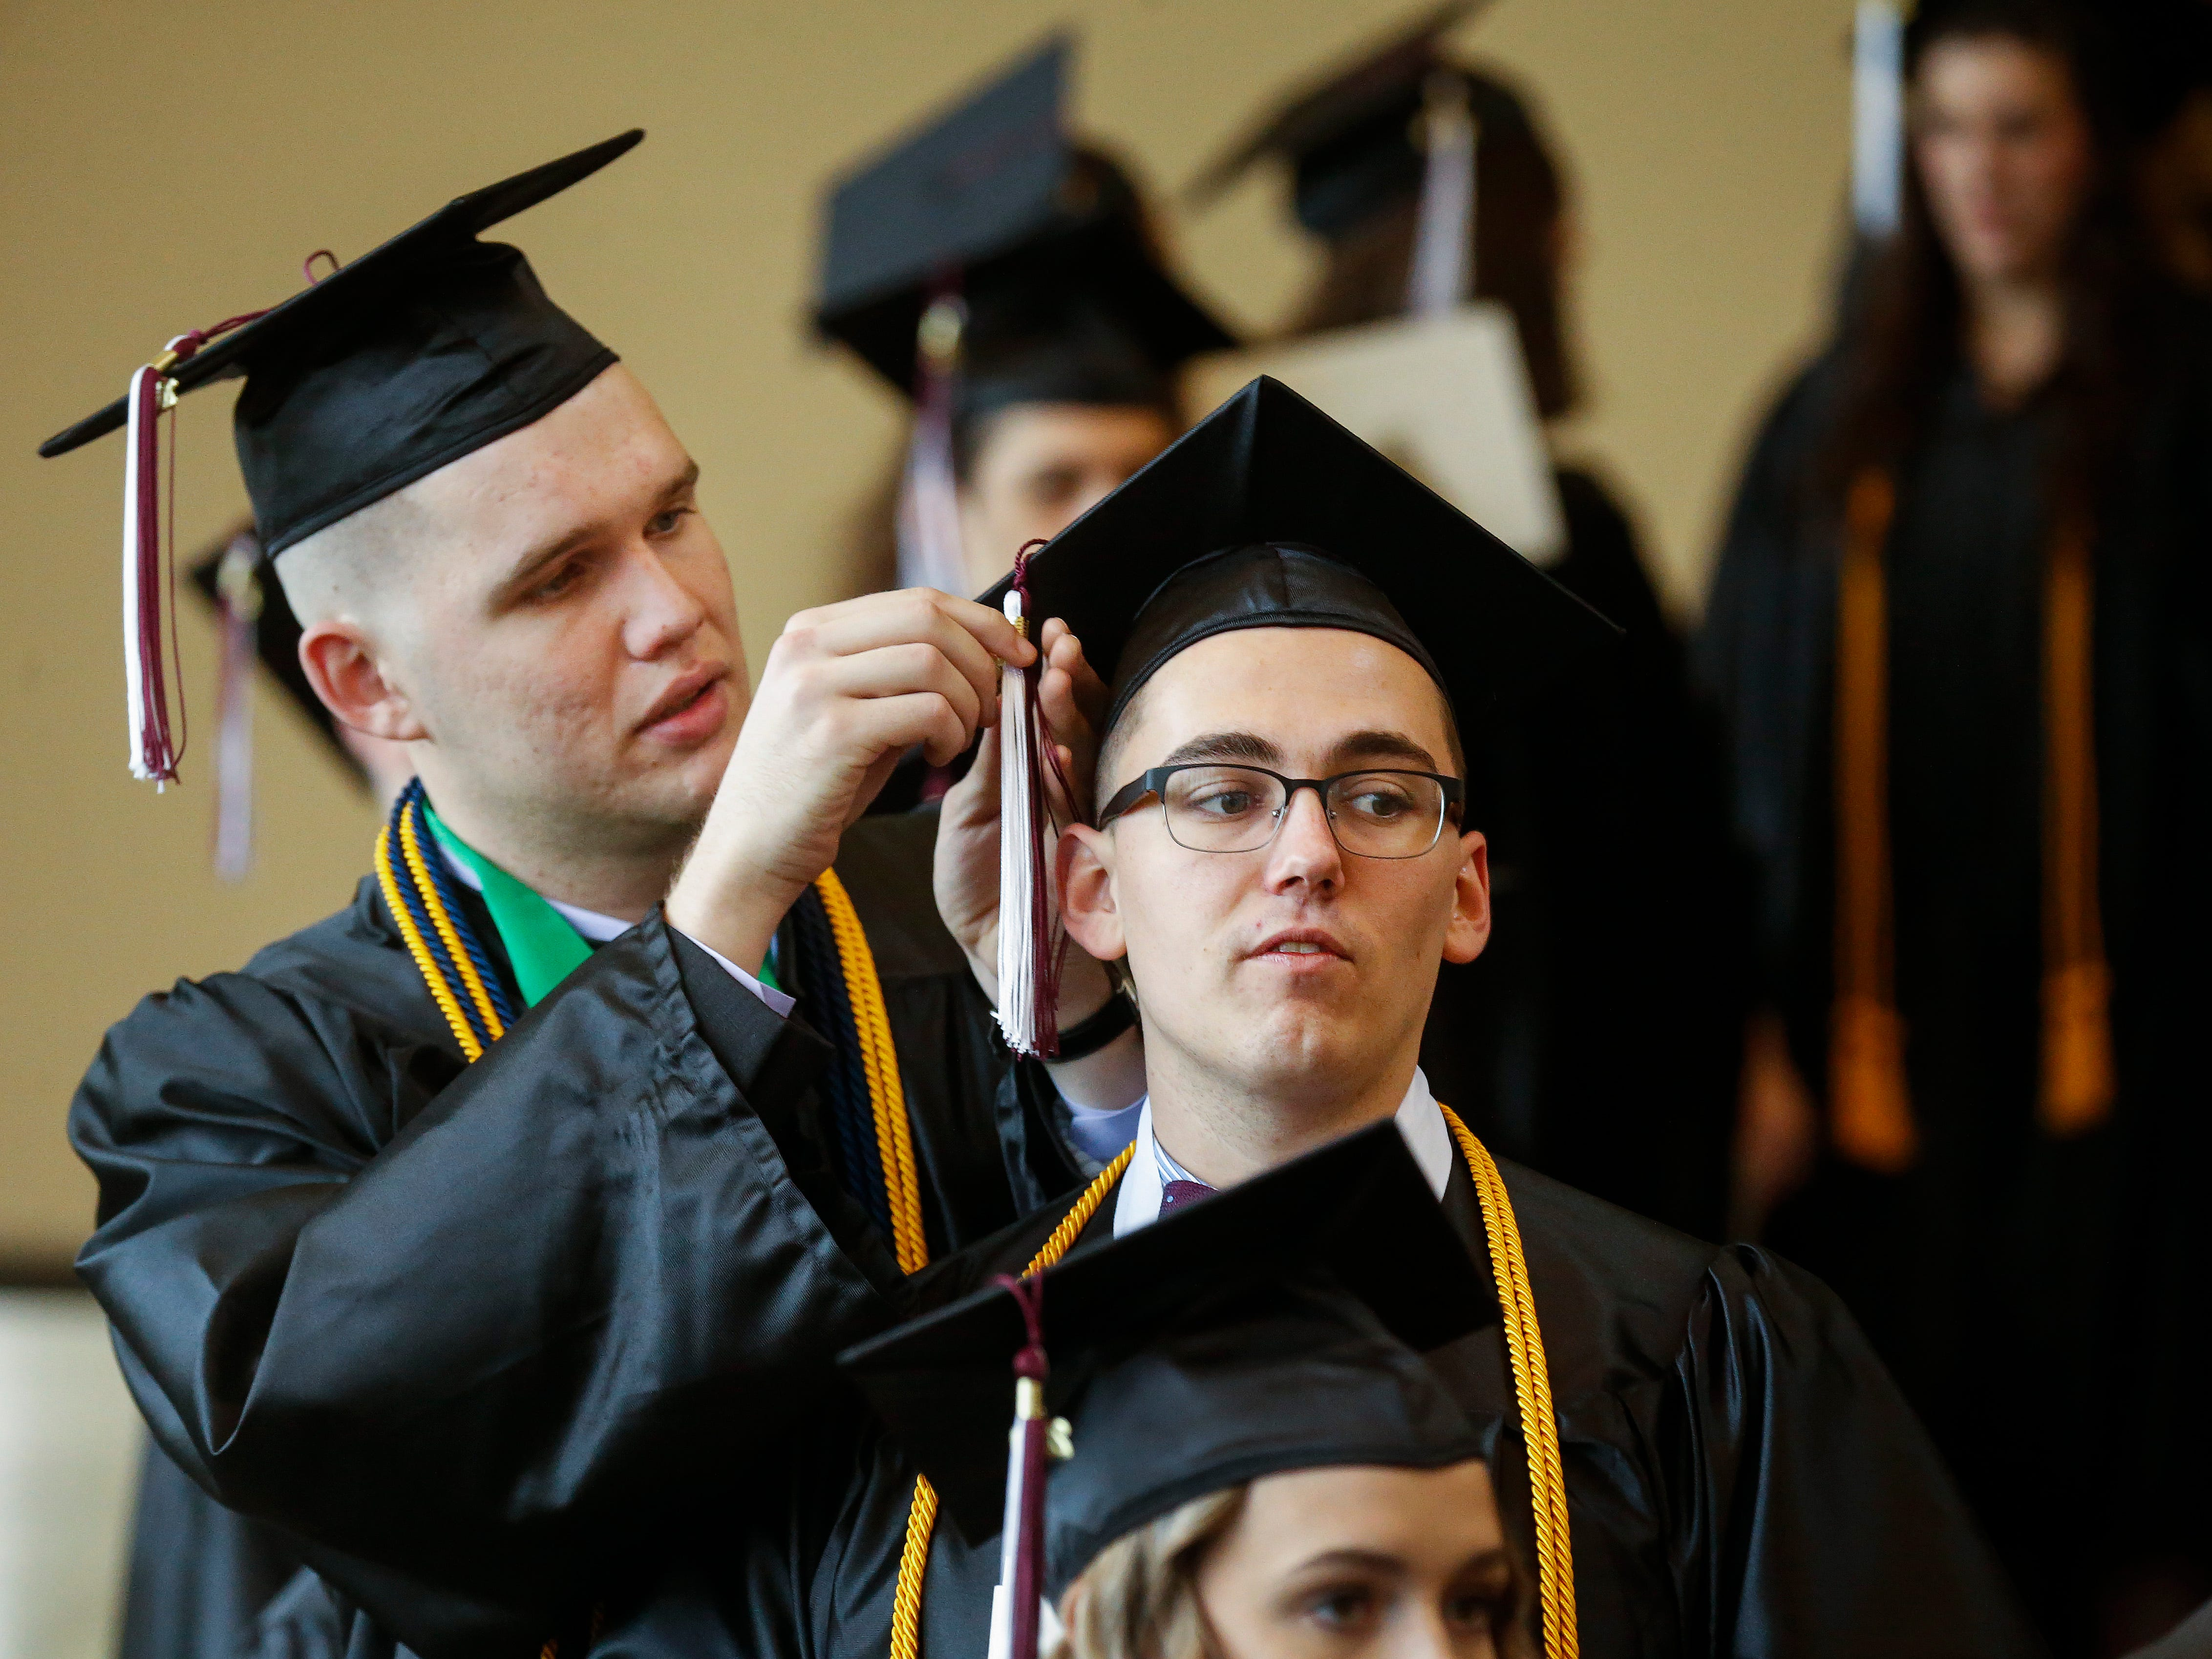 Kendall Mayo, left, fixes Evan Masters' tassel before Evangel University's 2019 Commencement Ceremony at James River Church in Ozark on Friday, May 3, 2019.